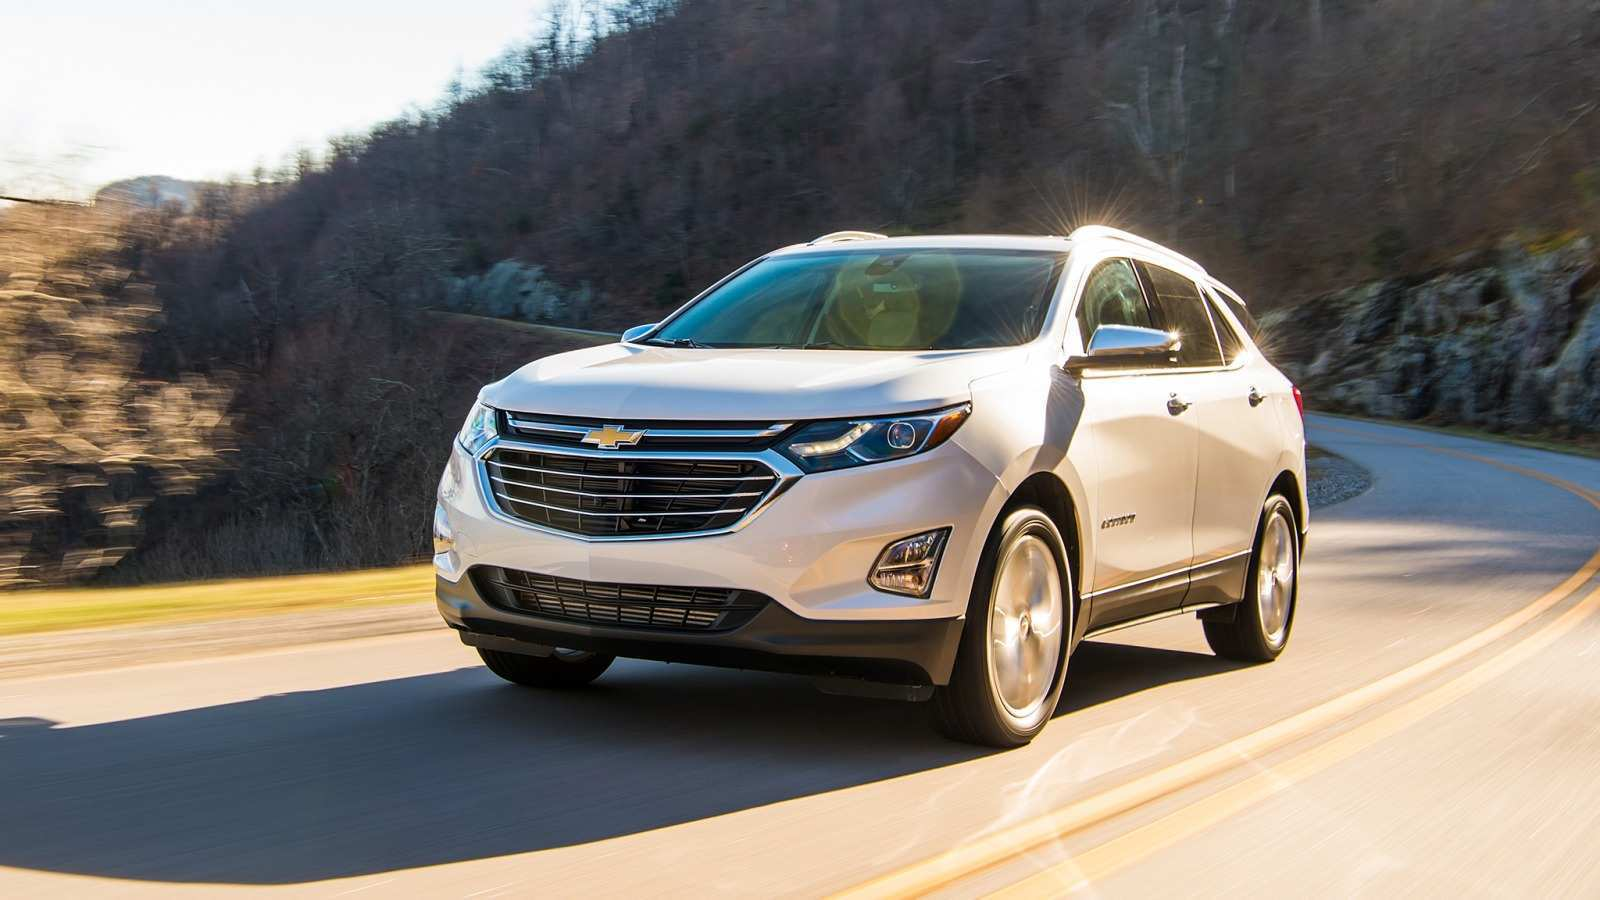 70 Great 2019 Chevrolet Vehicles Rumors with 2019 Chevrolet Vehicles